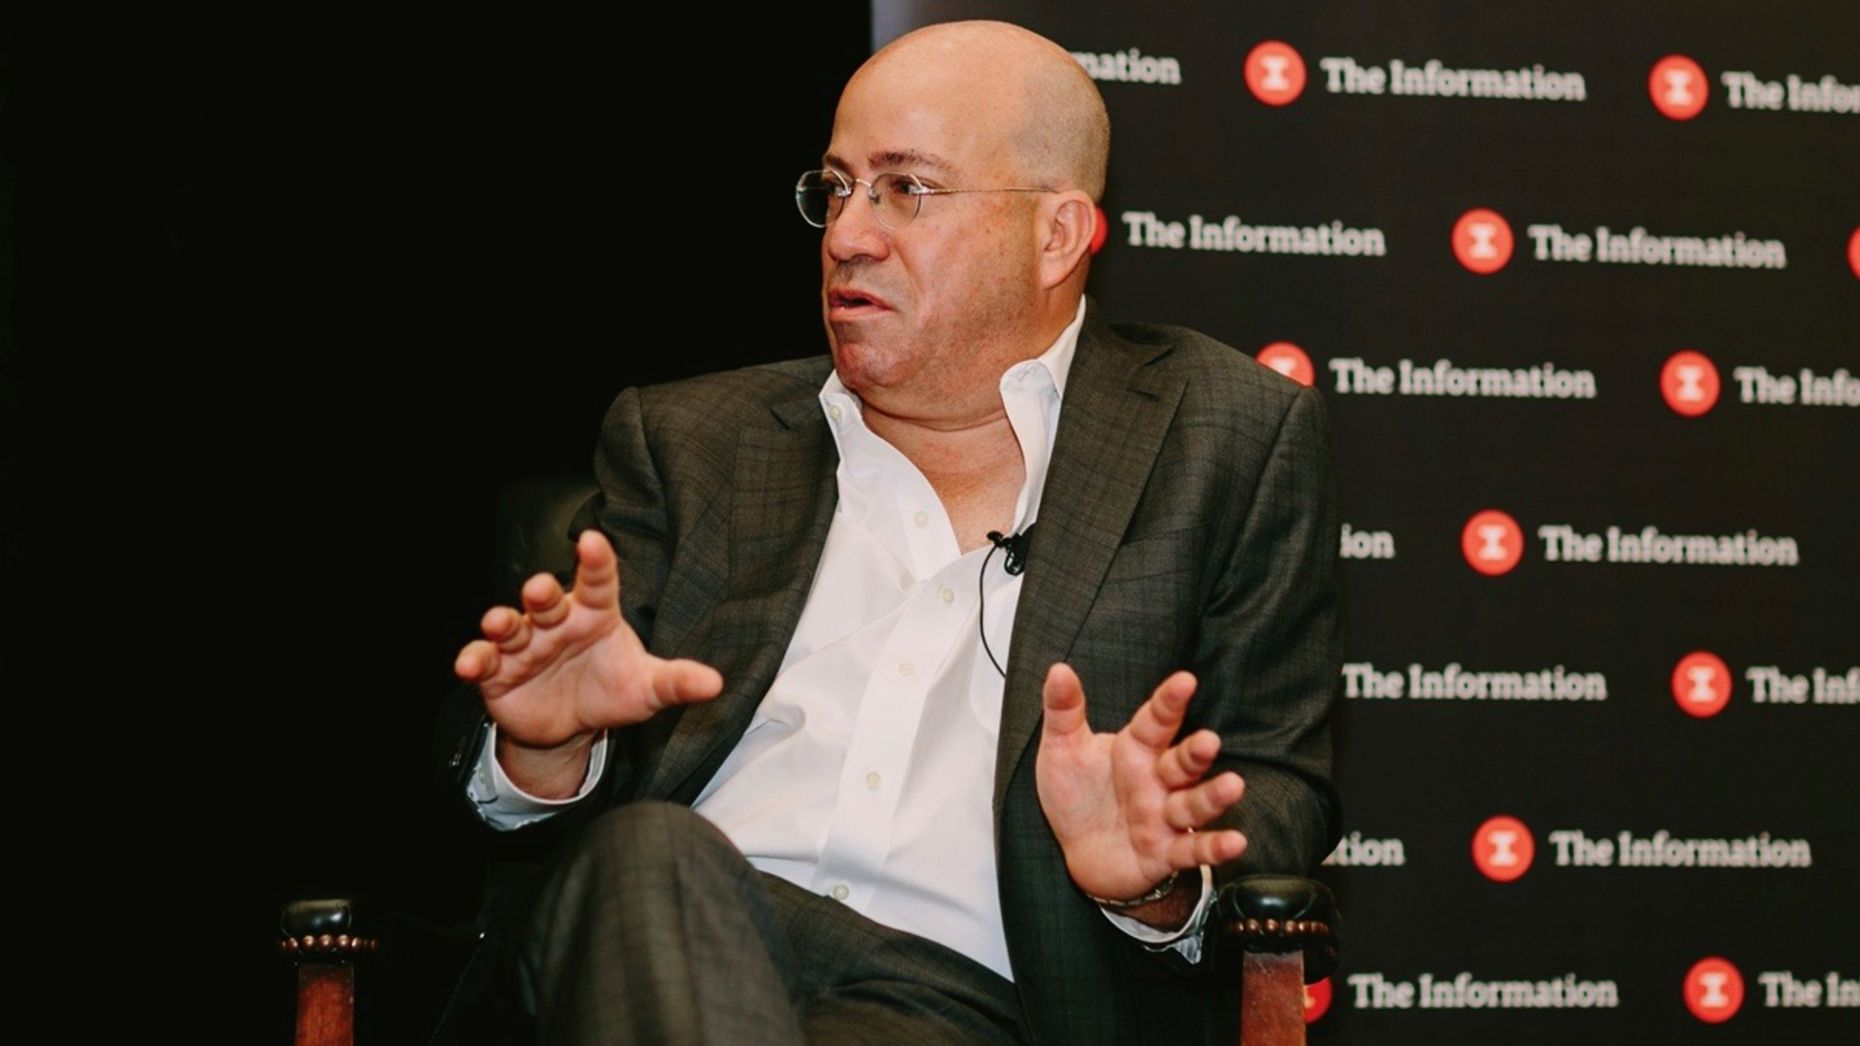 CNN CEO Jeff Zucker. Photo by Karen Obrist